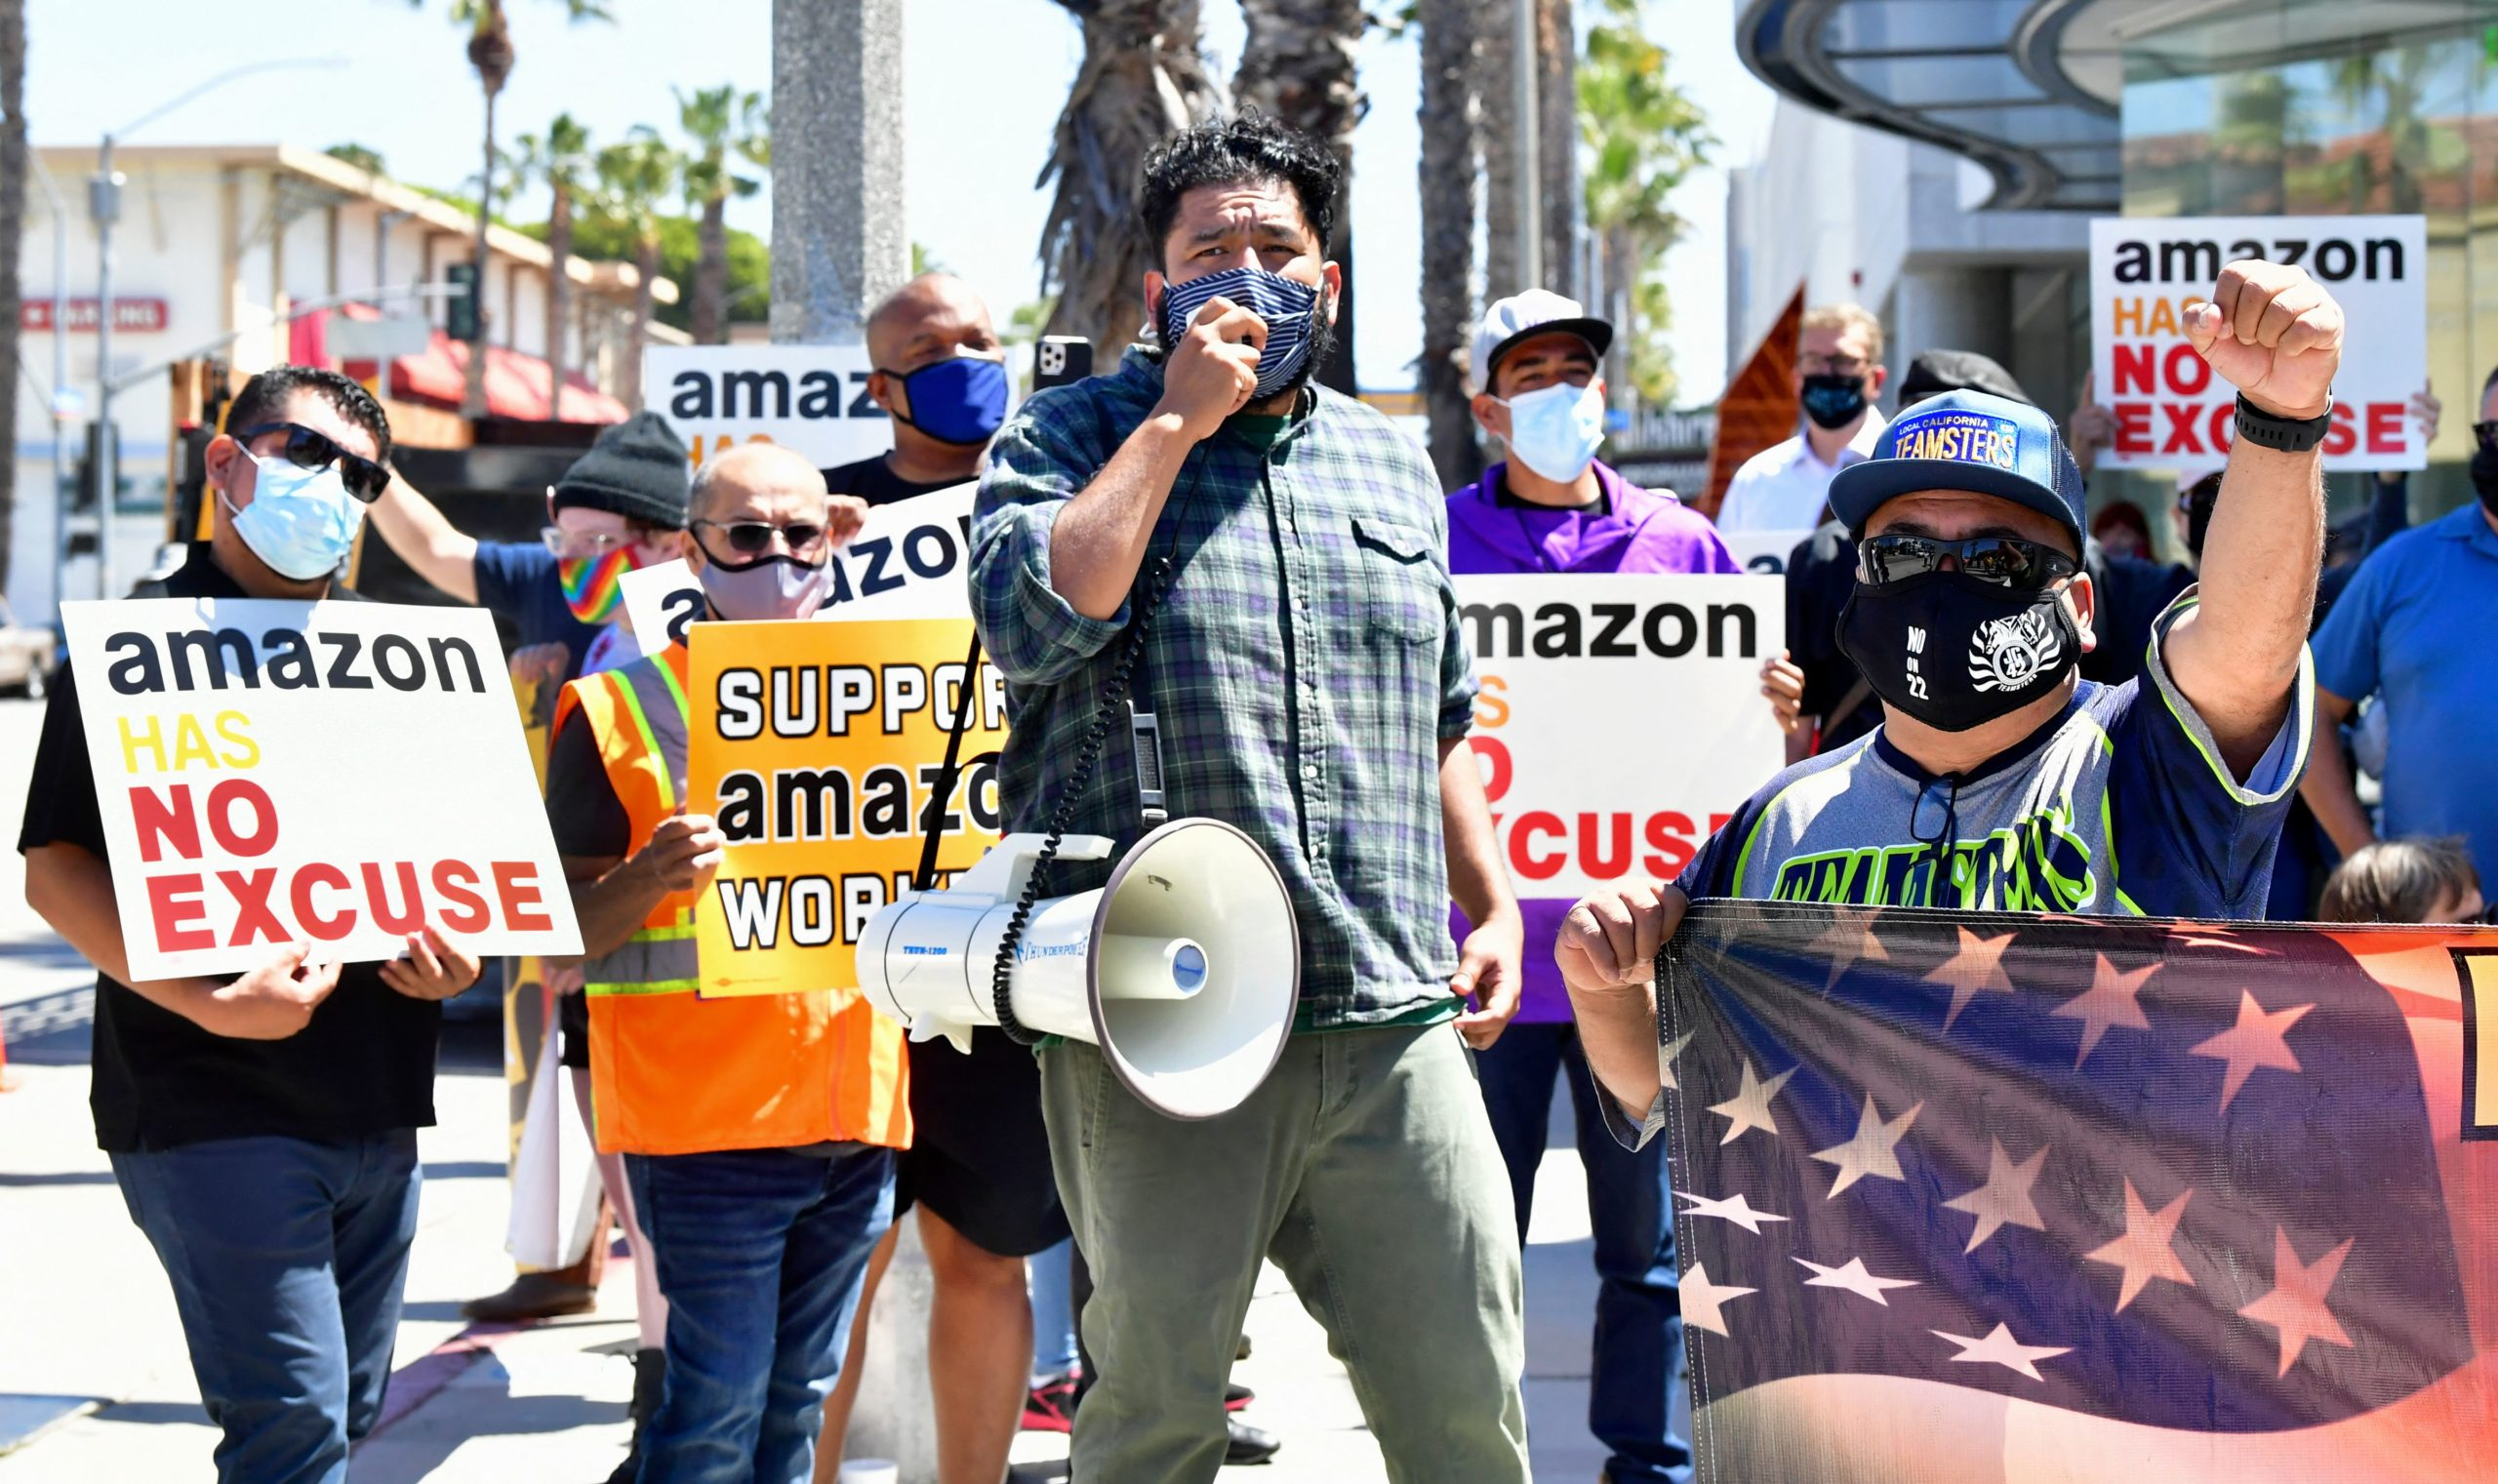 Amazon workers protest on May 24 in Santa Monica, California. (Frederic J. Brown/AFP via Getty Images)